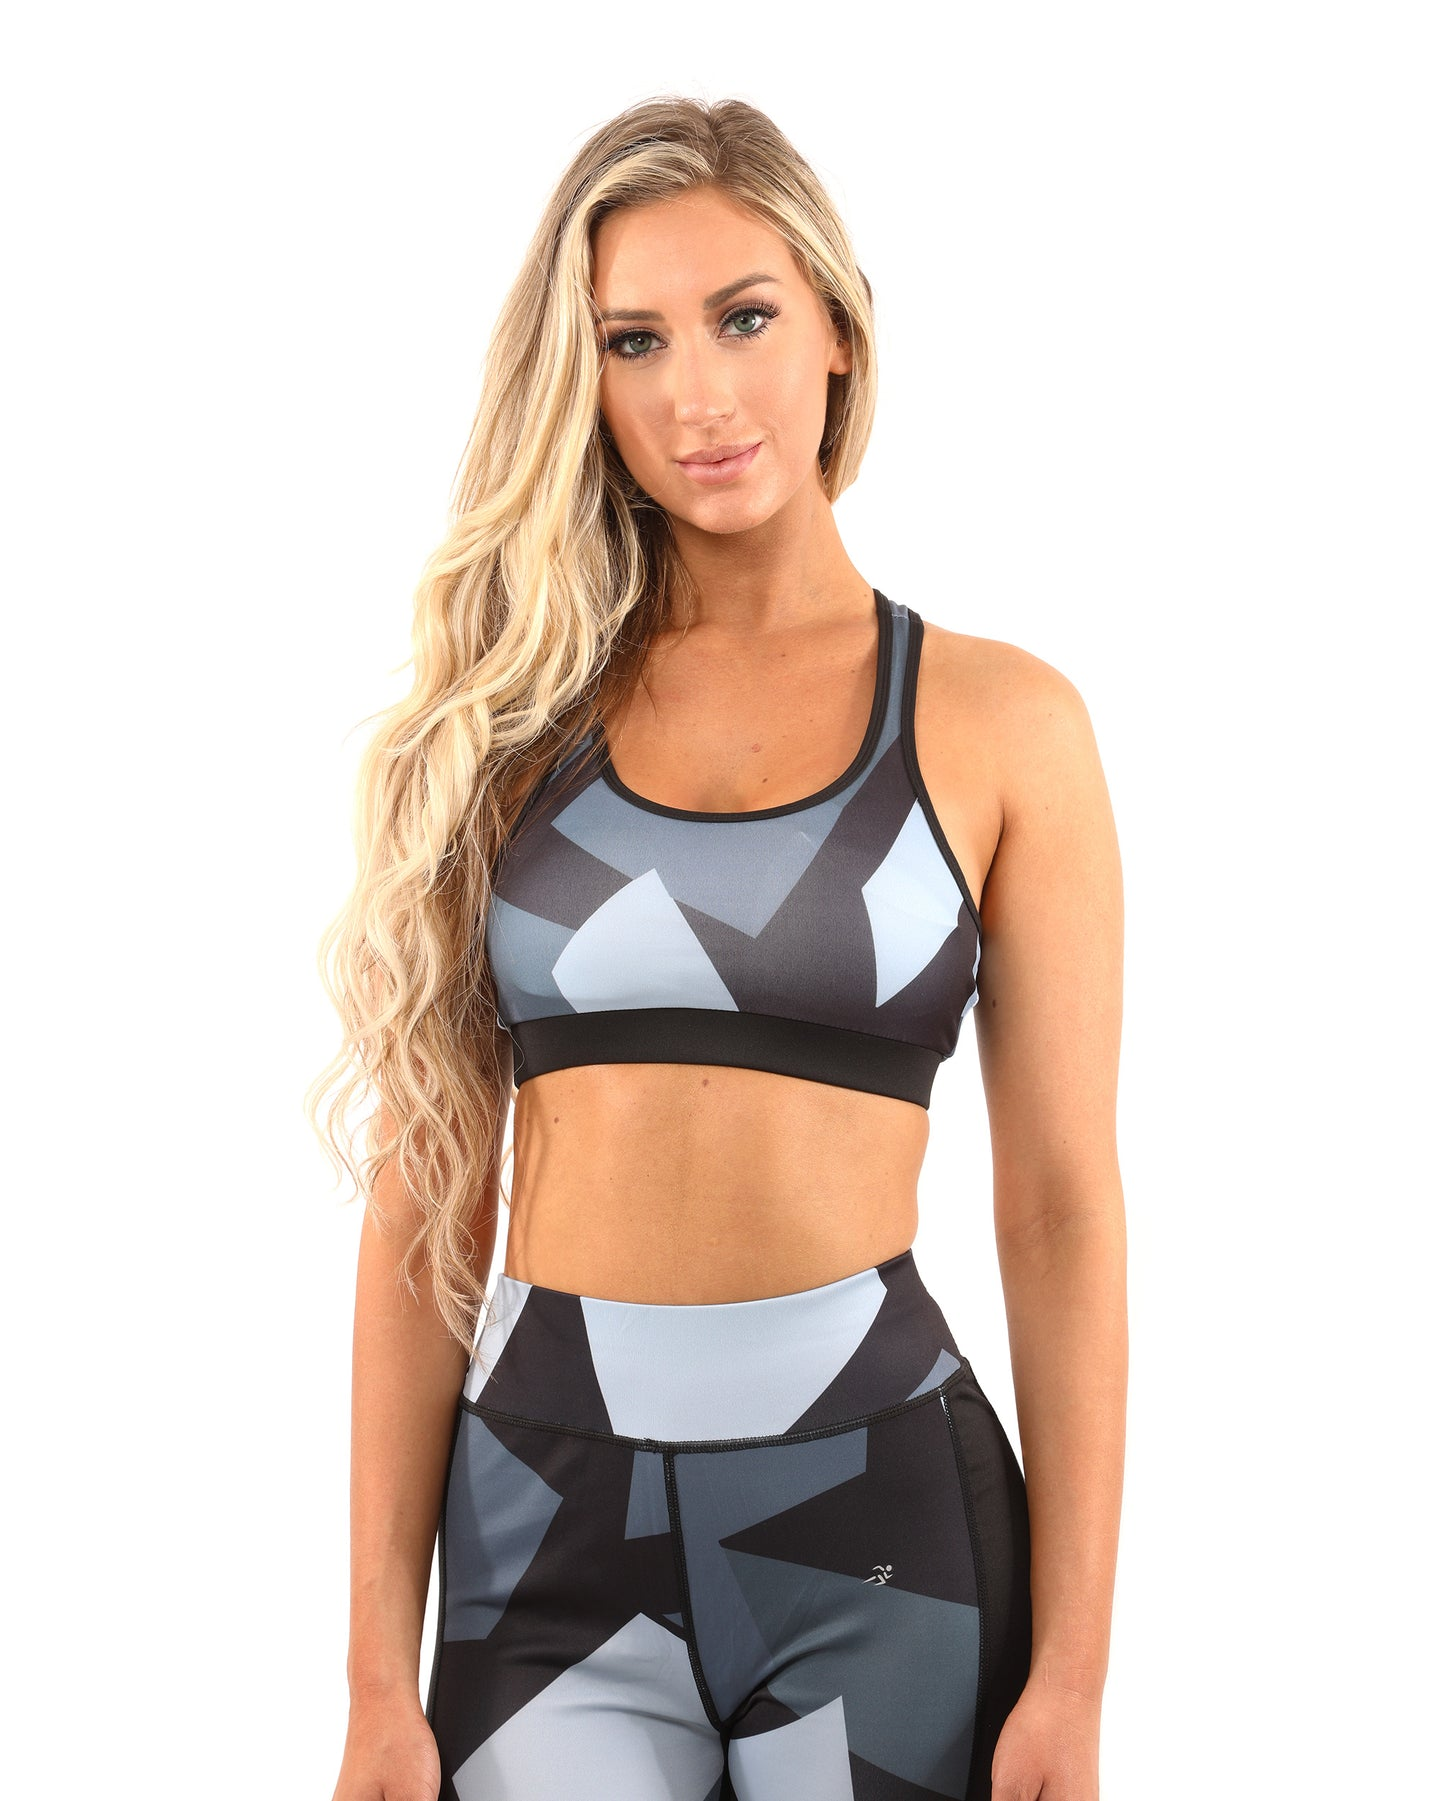 Bondi Sports Bra - Black/Grey - Savoy Active